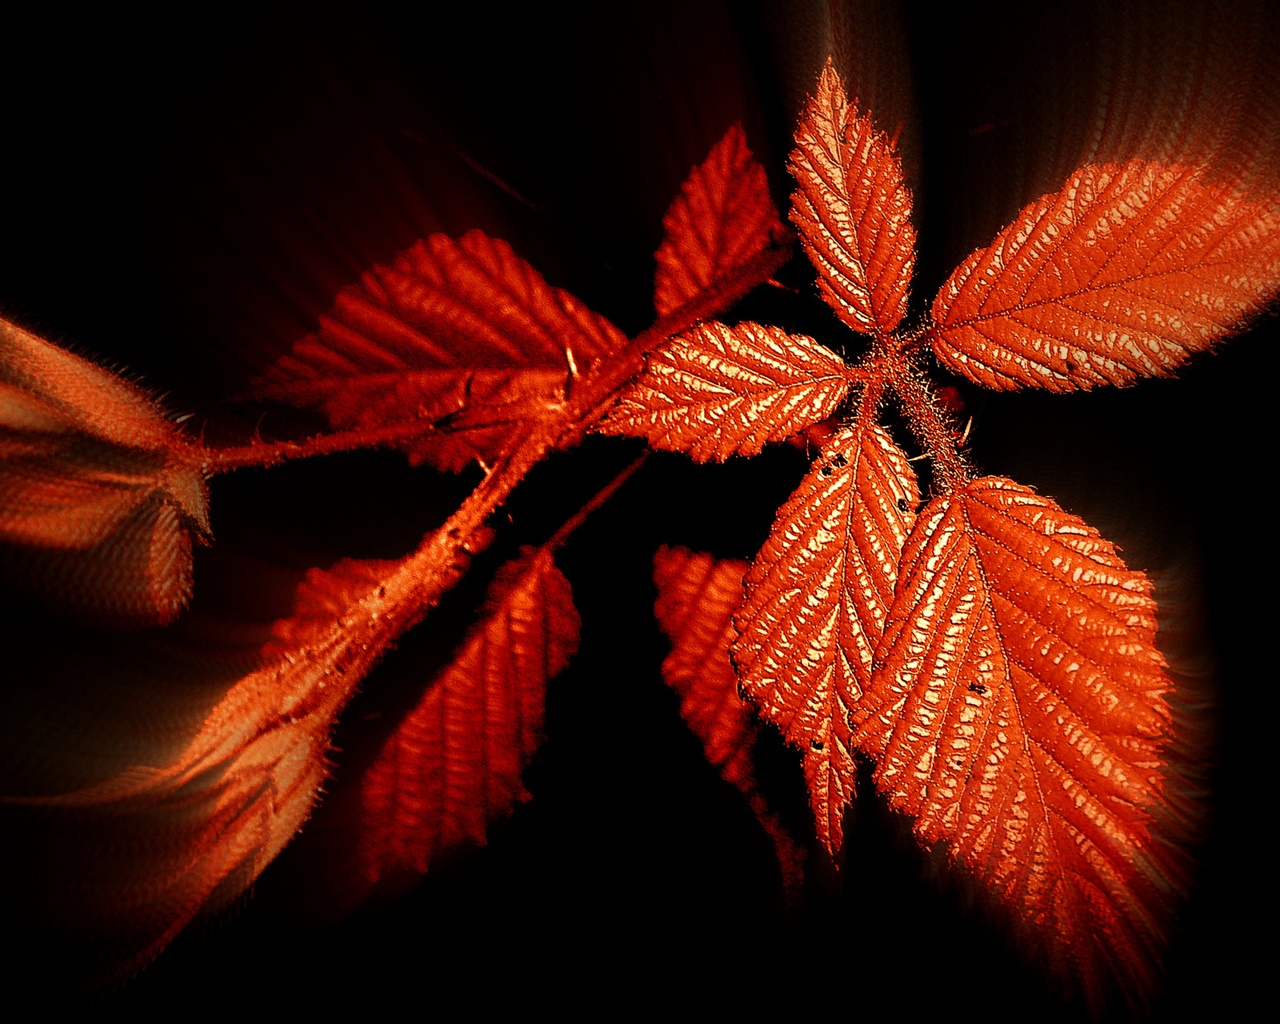 Autumn, red leaves, black background 1280x1024 wallpaper